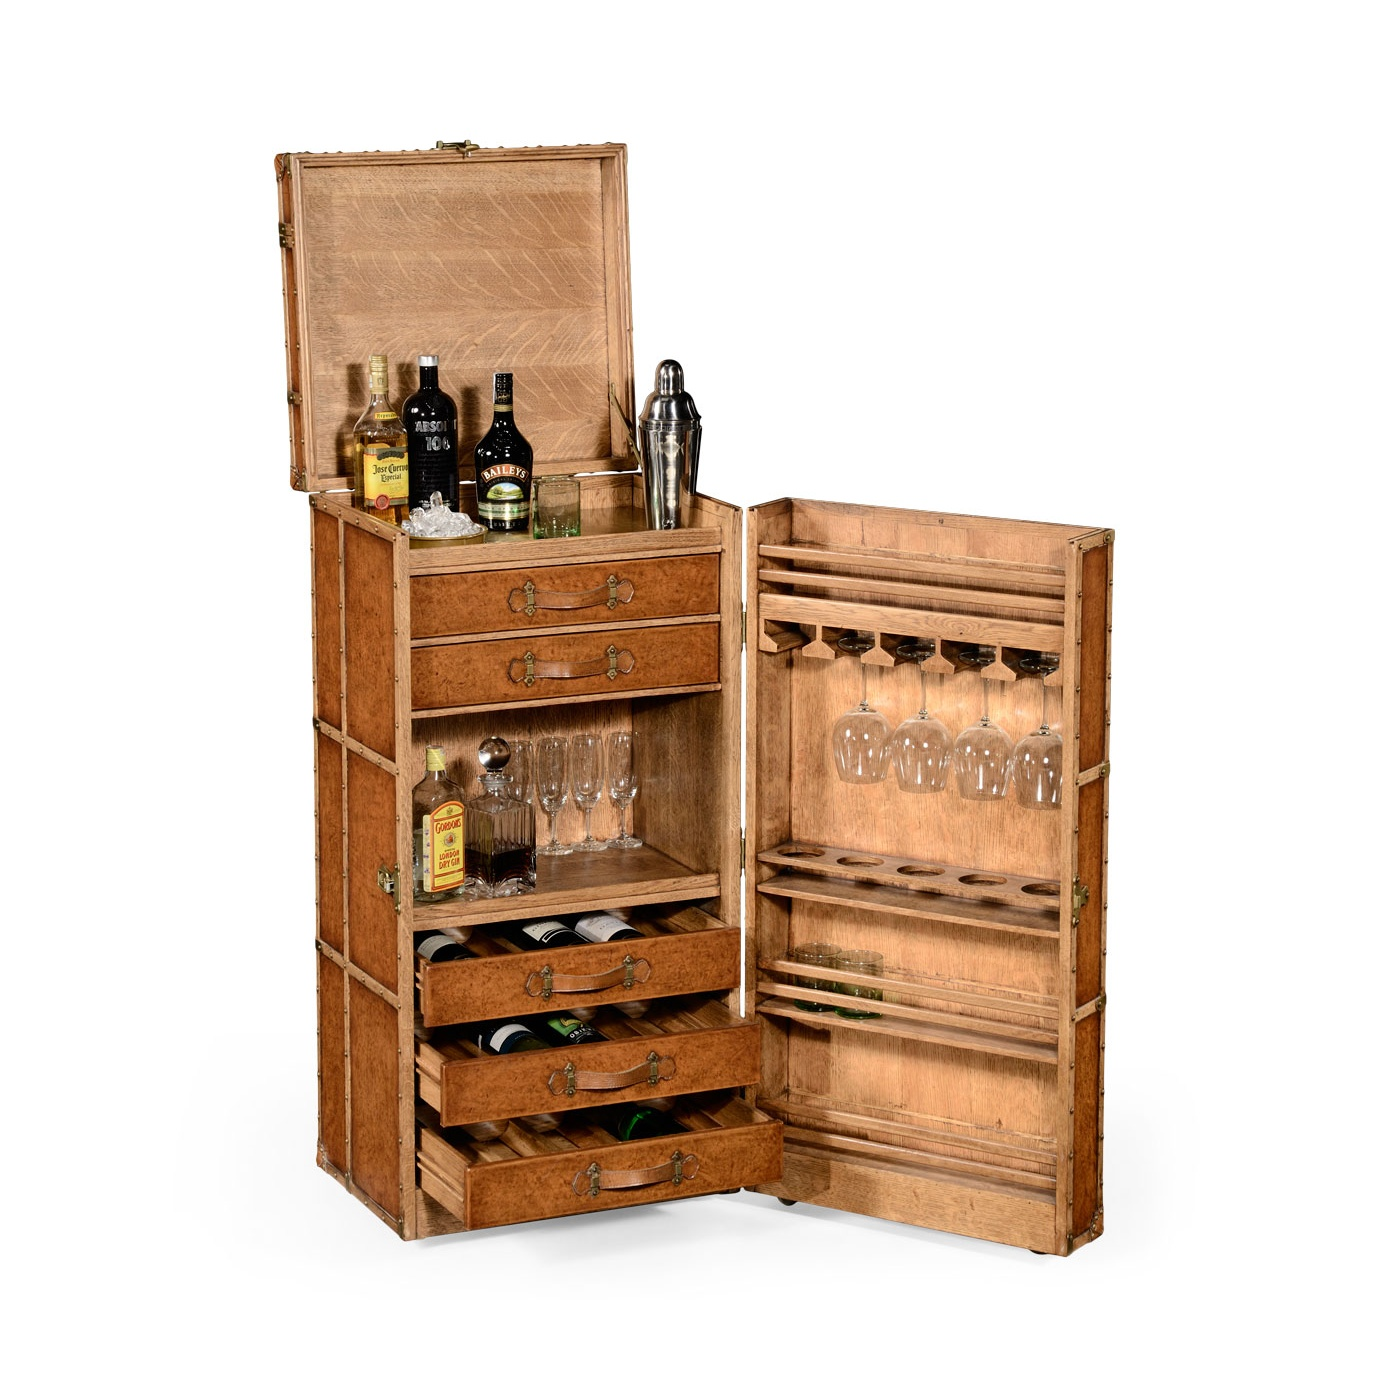 Jonathan Charles Furniture Drinks Cabinet In Travel Trunk Style - Drinks Cabinet In Travel Trunk Style Swanky Interiors